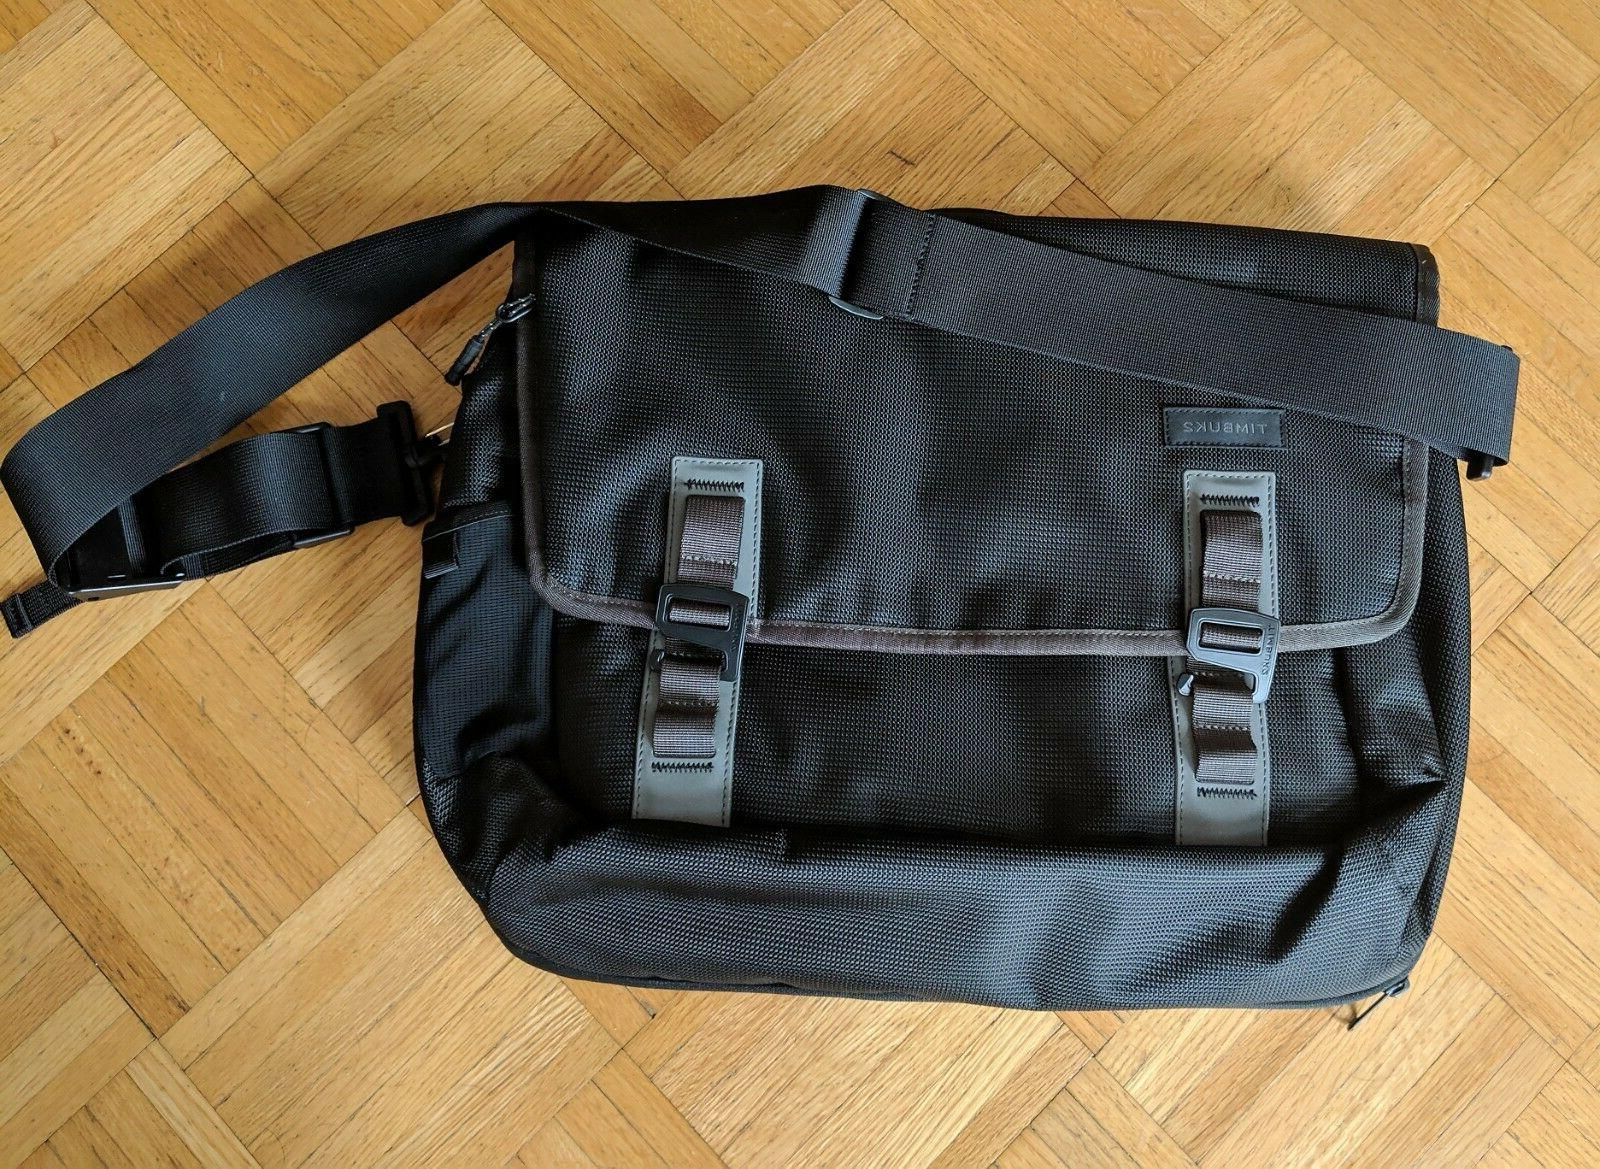 command laptop messenger bag new without tags